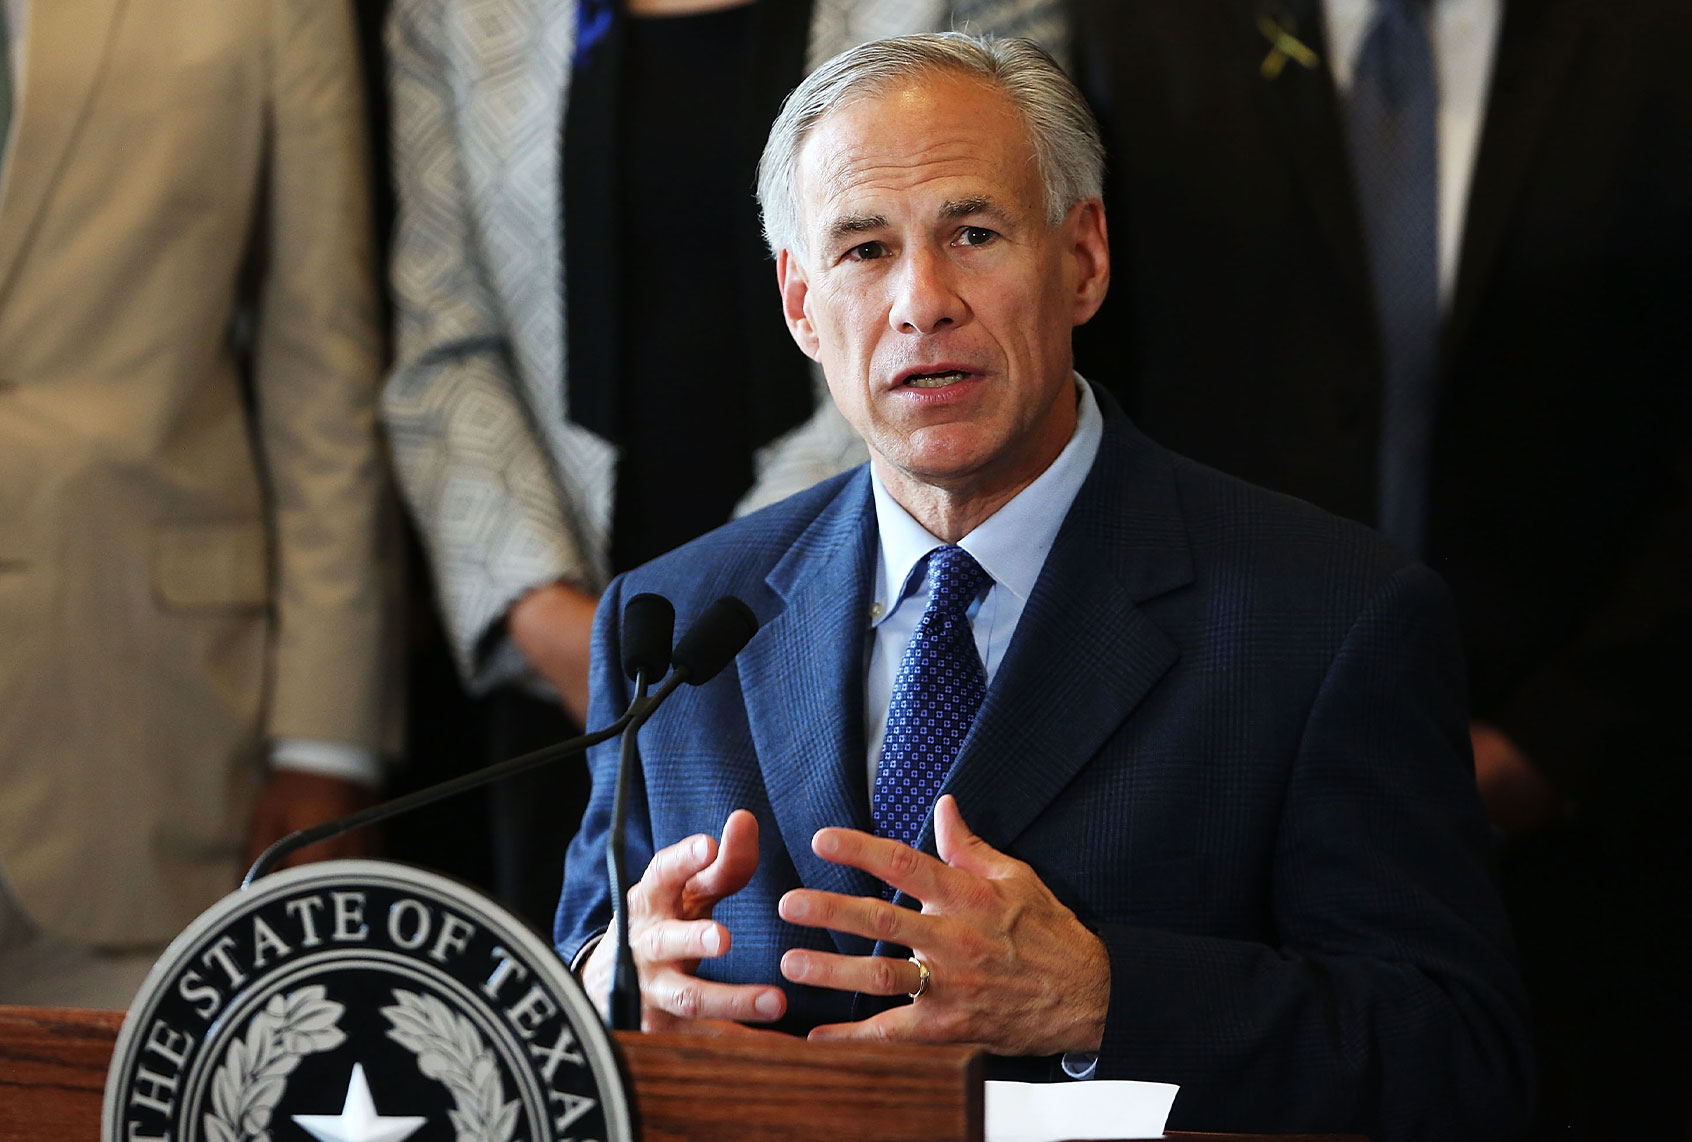 Texas agency removes site with suicide hotline for LGBTQ youth after Abbott opponent complains